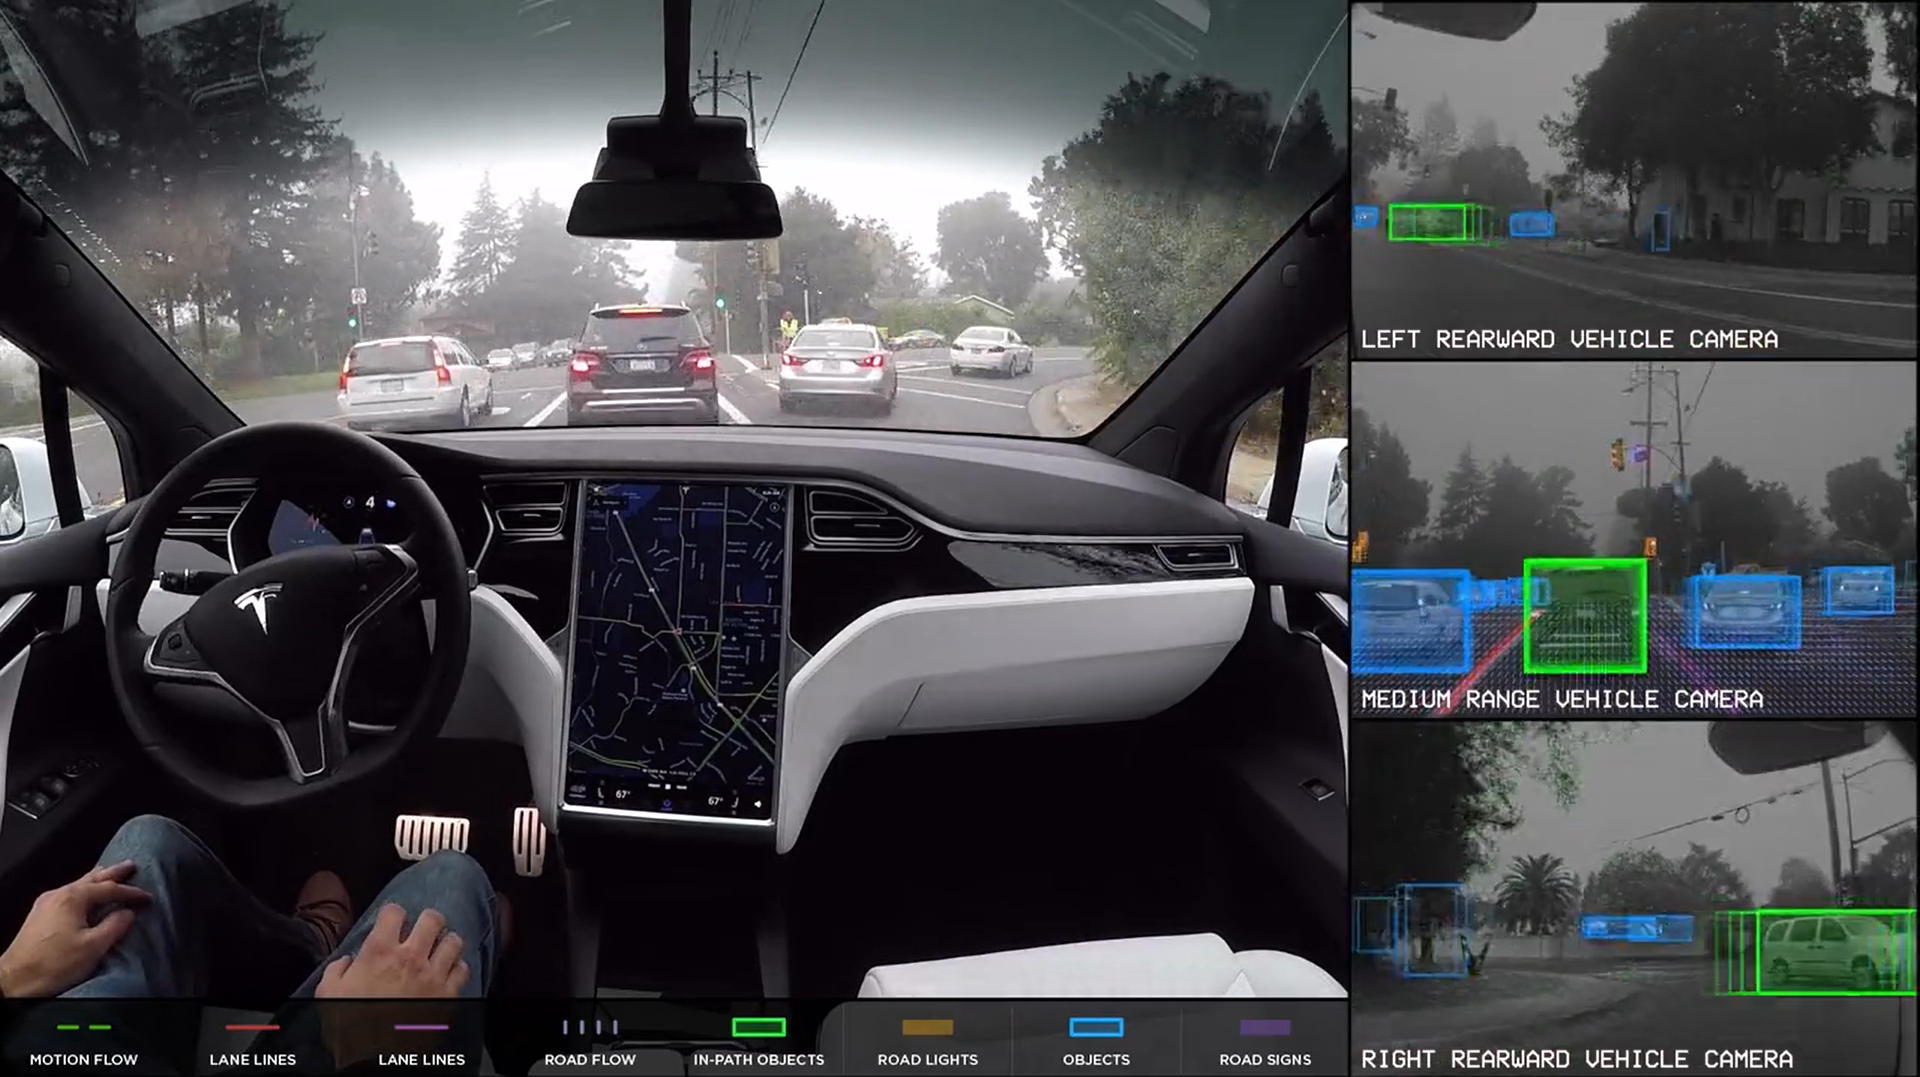 Tesla closes a deal with former engineer accused of stealing autopilot code